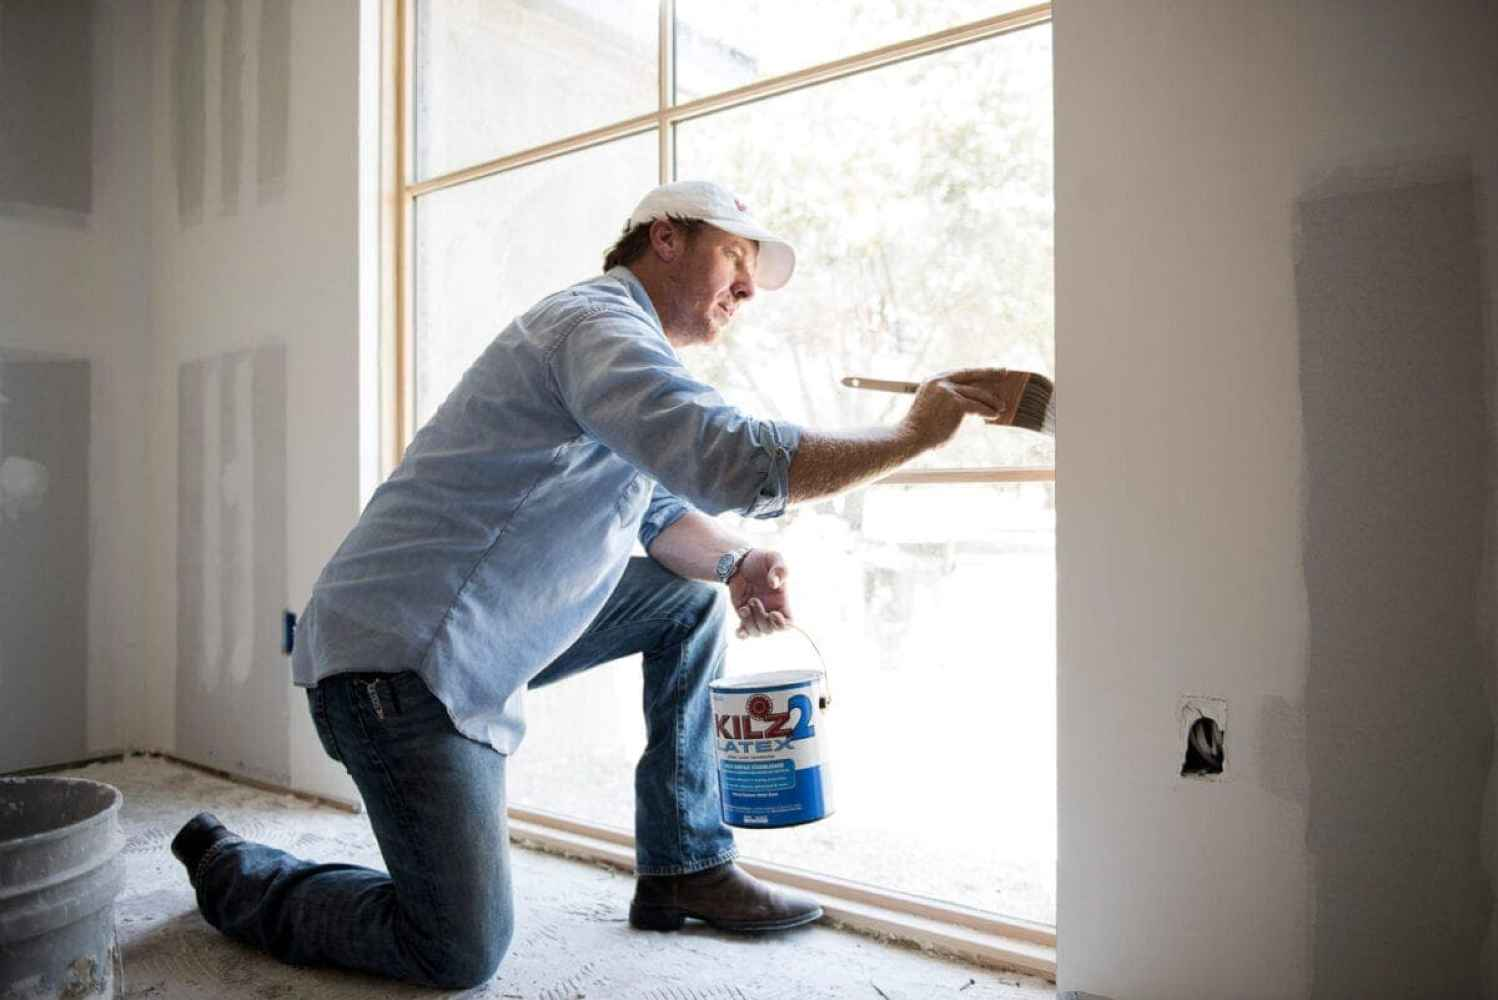 An interview with Chip Gaines including how to paint latex over oil based paint, the most popular Magnolia Home Paint colors, and where homeowners can get the most bang for their buck in their own fixer uppers.